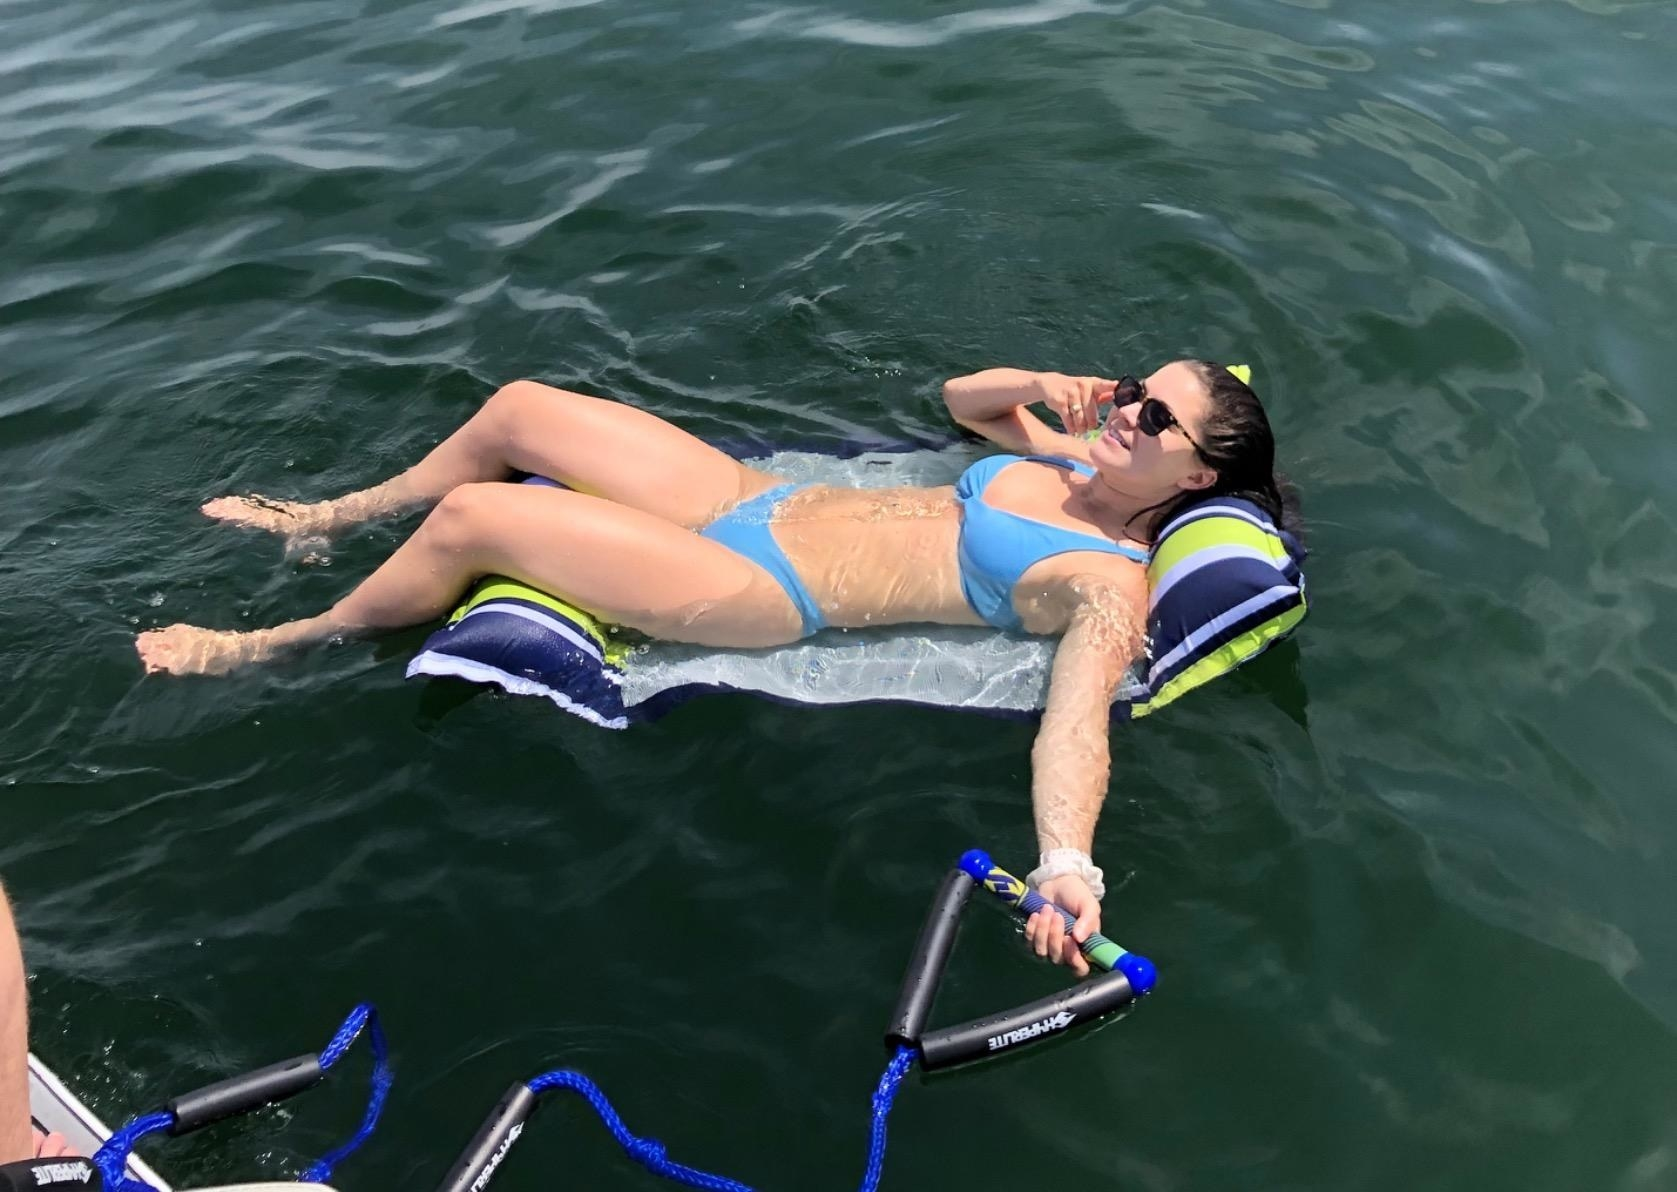 Reviewer relaxing on the float, which has a pillow for the neck and the legs